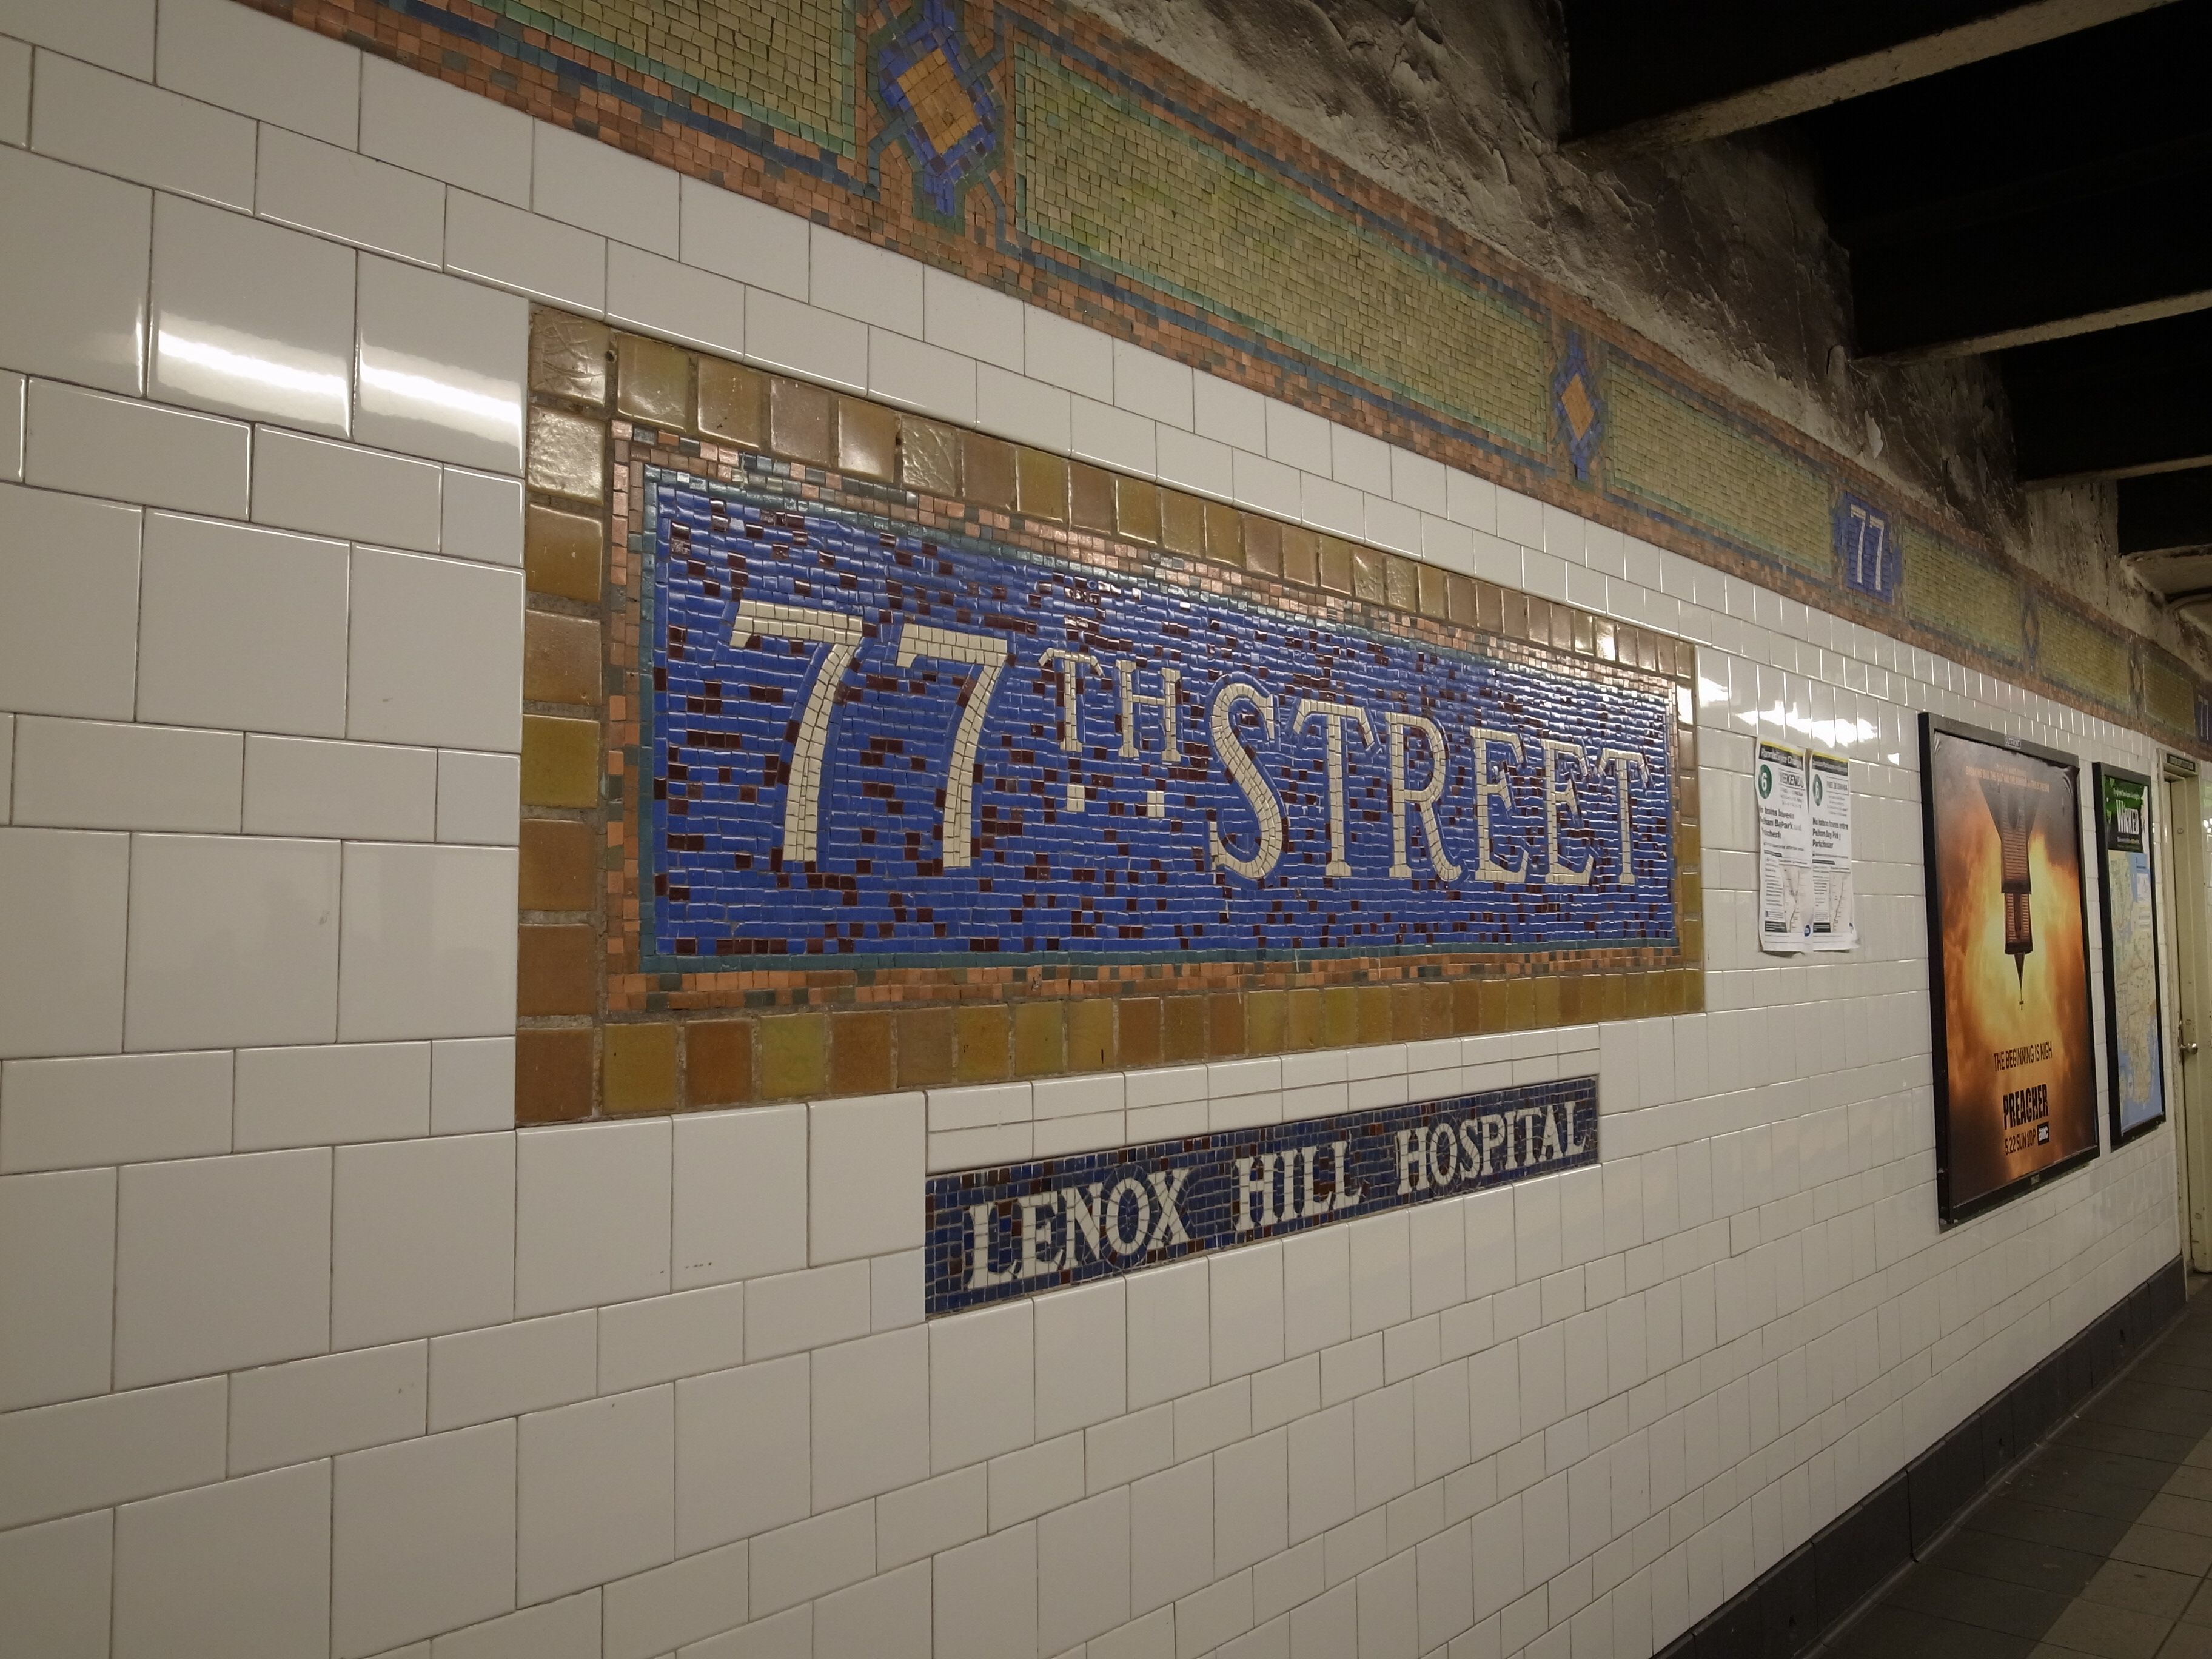 NY subway, 77th Street, Lenox Hill Hospital | Native New